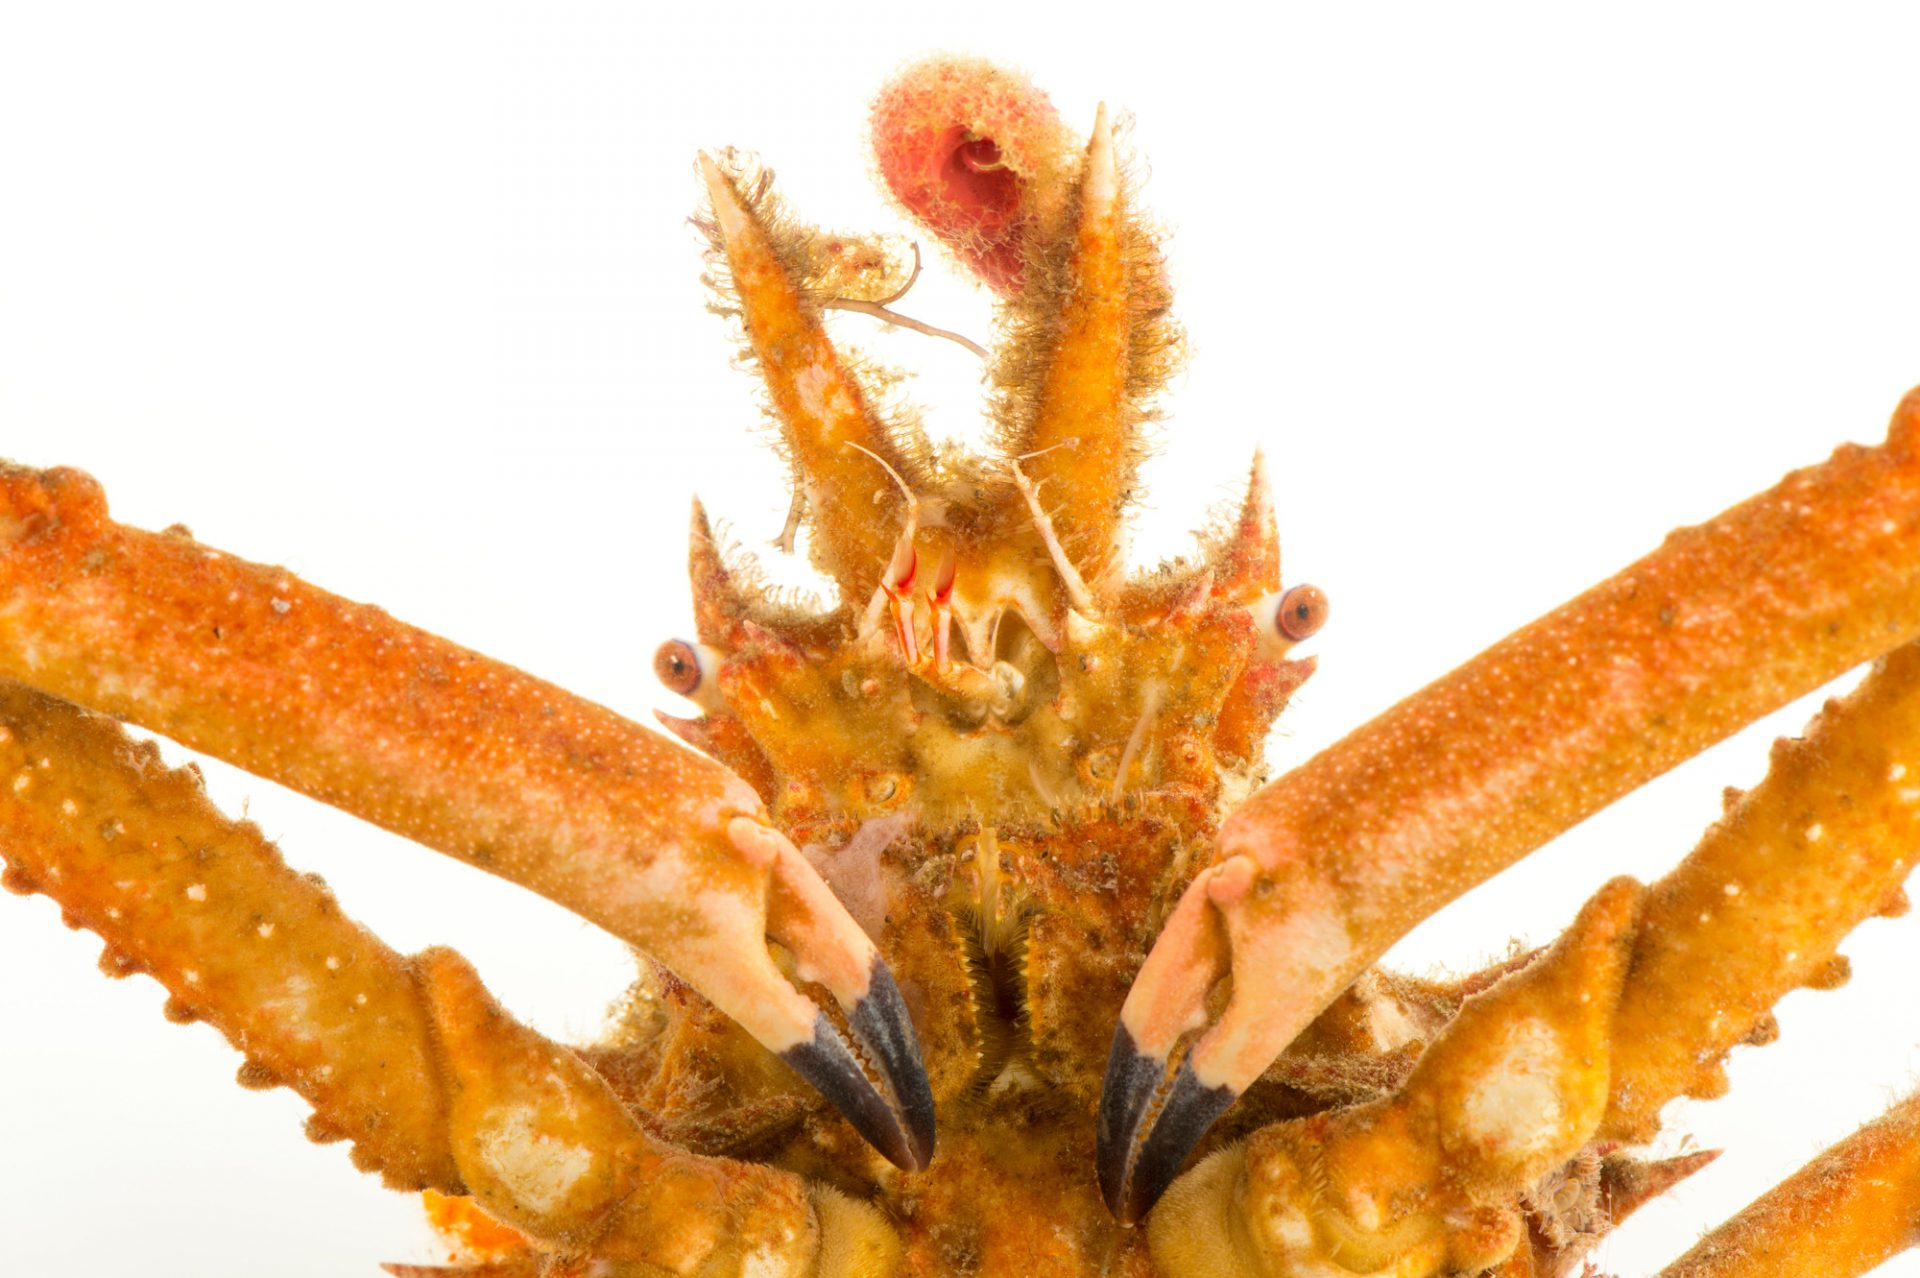 Photo: A decorator crab (Stenocionops furcata coelata) at Gulf Specimen Marine Lab.